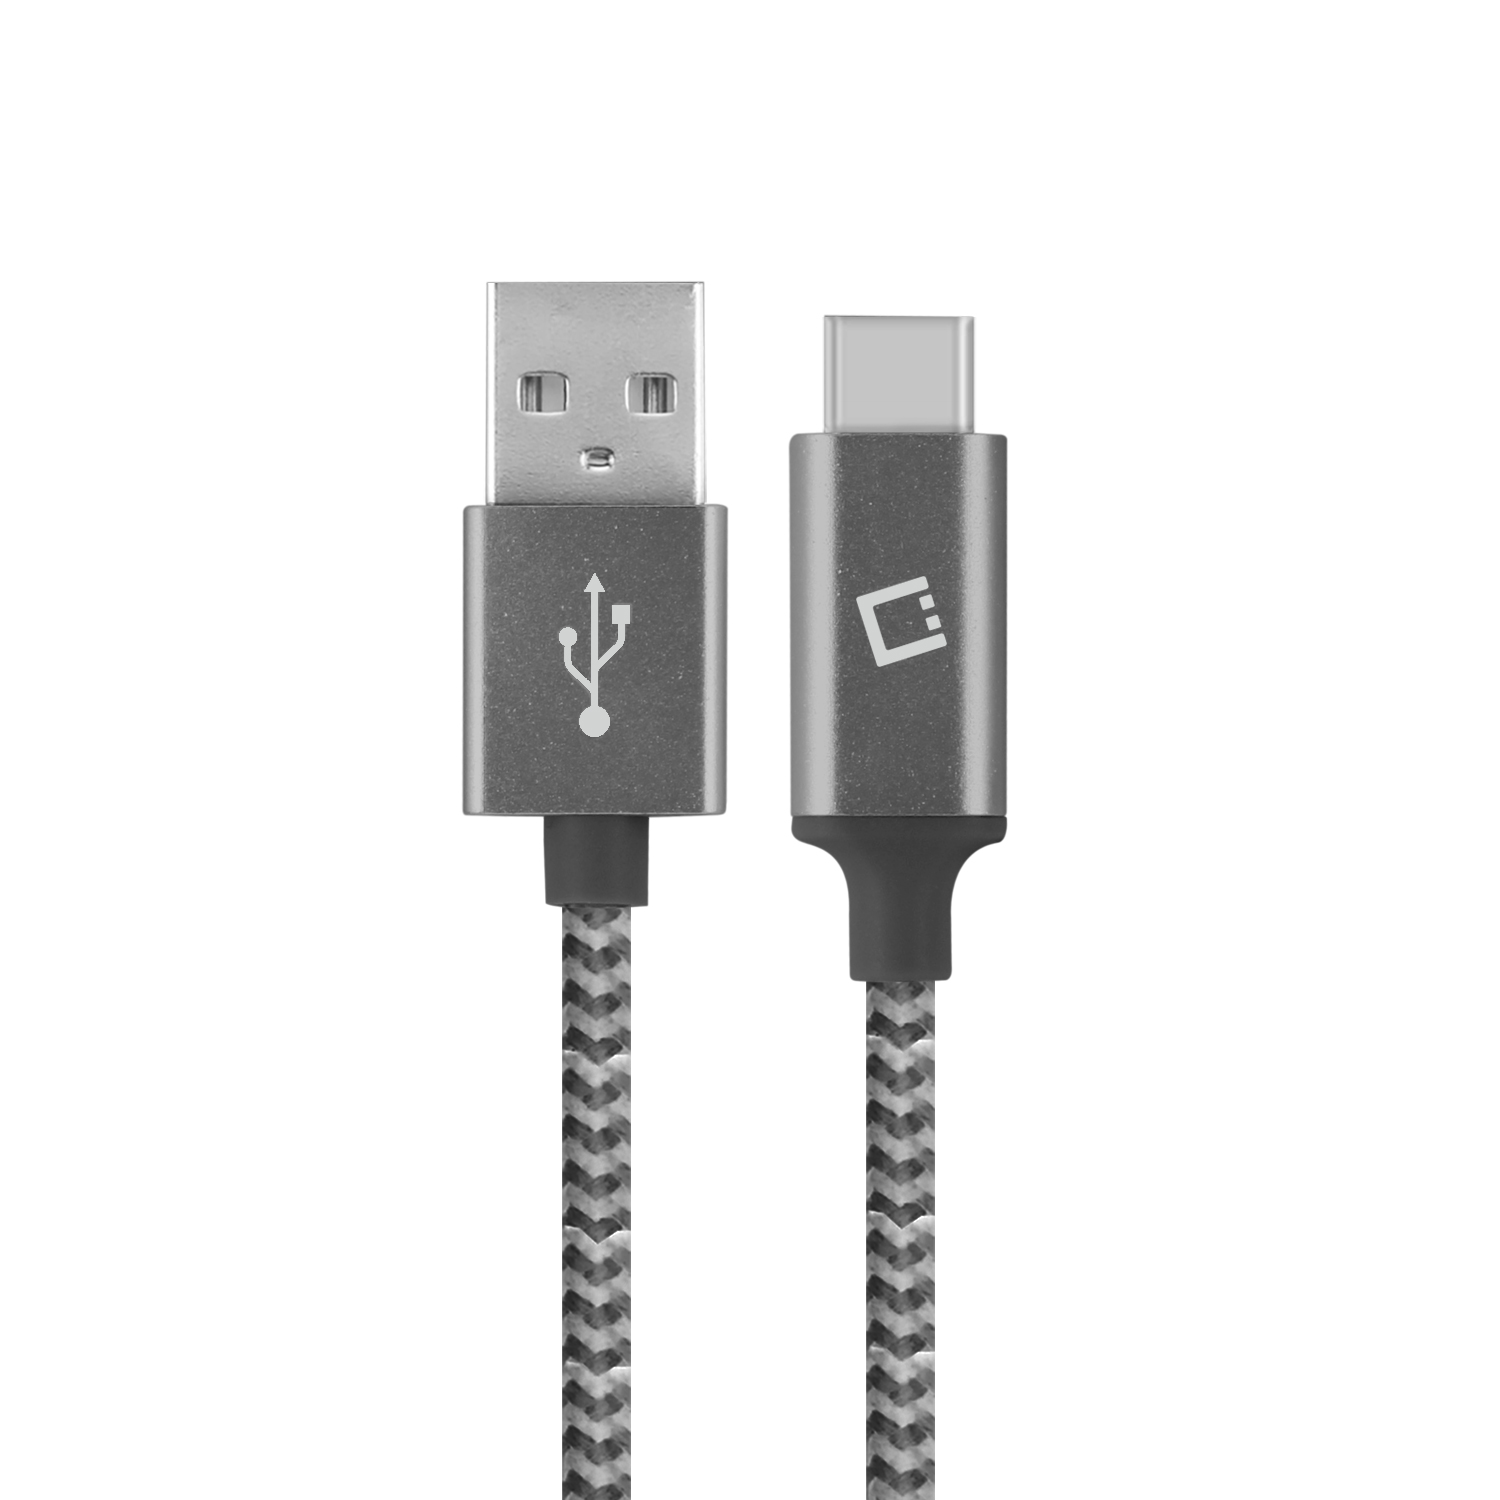 ZTE Blade V8 Pro USB Type-C To Type-A Braided Data Power Cable Black 4ft Round